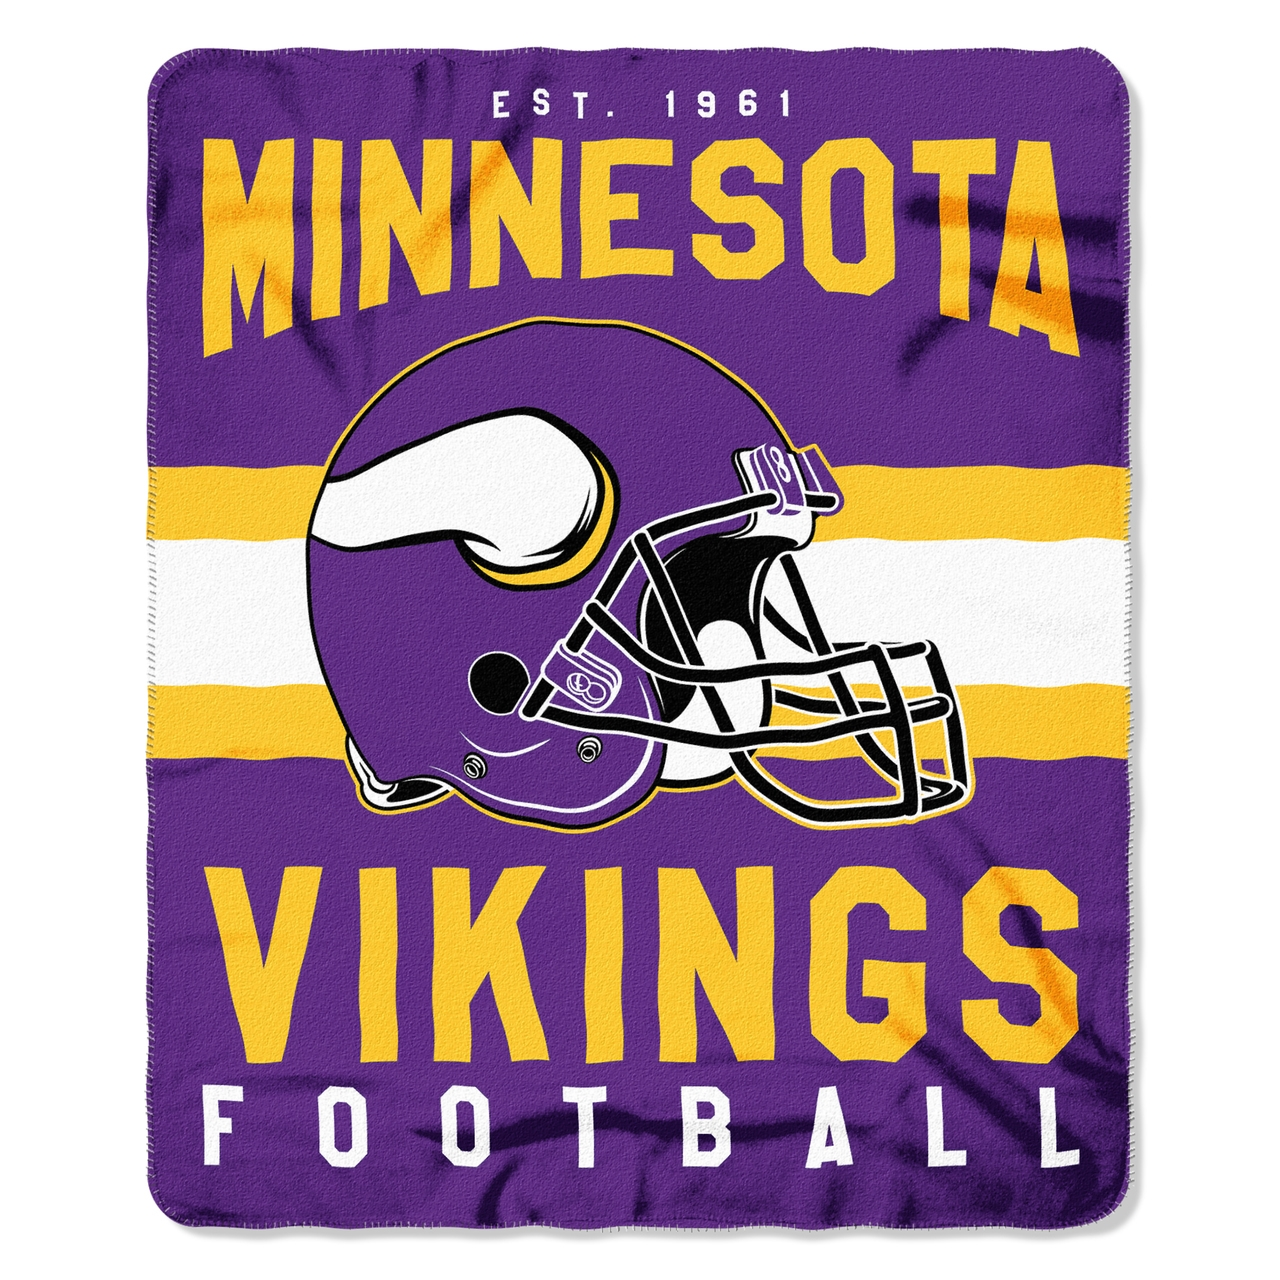 Gifts Fleece - 8791835021 - Minnesota Vikings Blanket 50x60 Fleece Singular Design